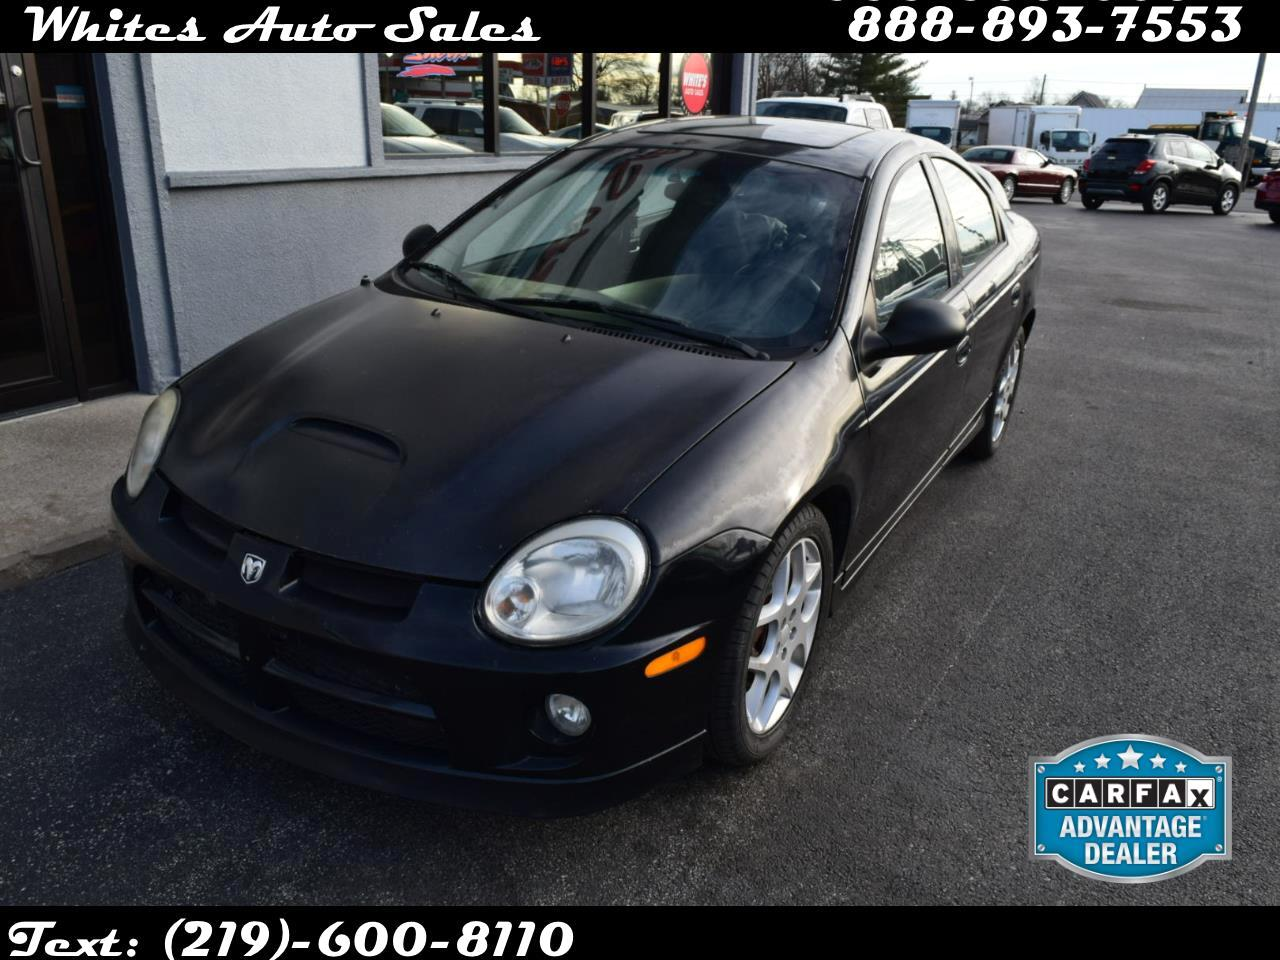 Dodge SRT-4 4dr Sdn SRT4 2004